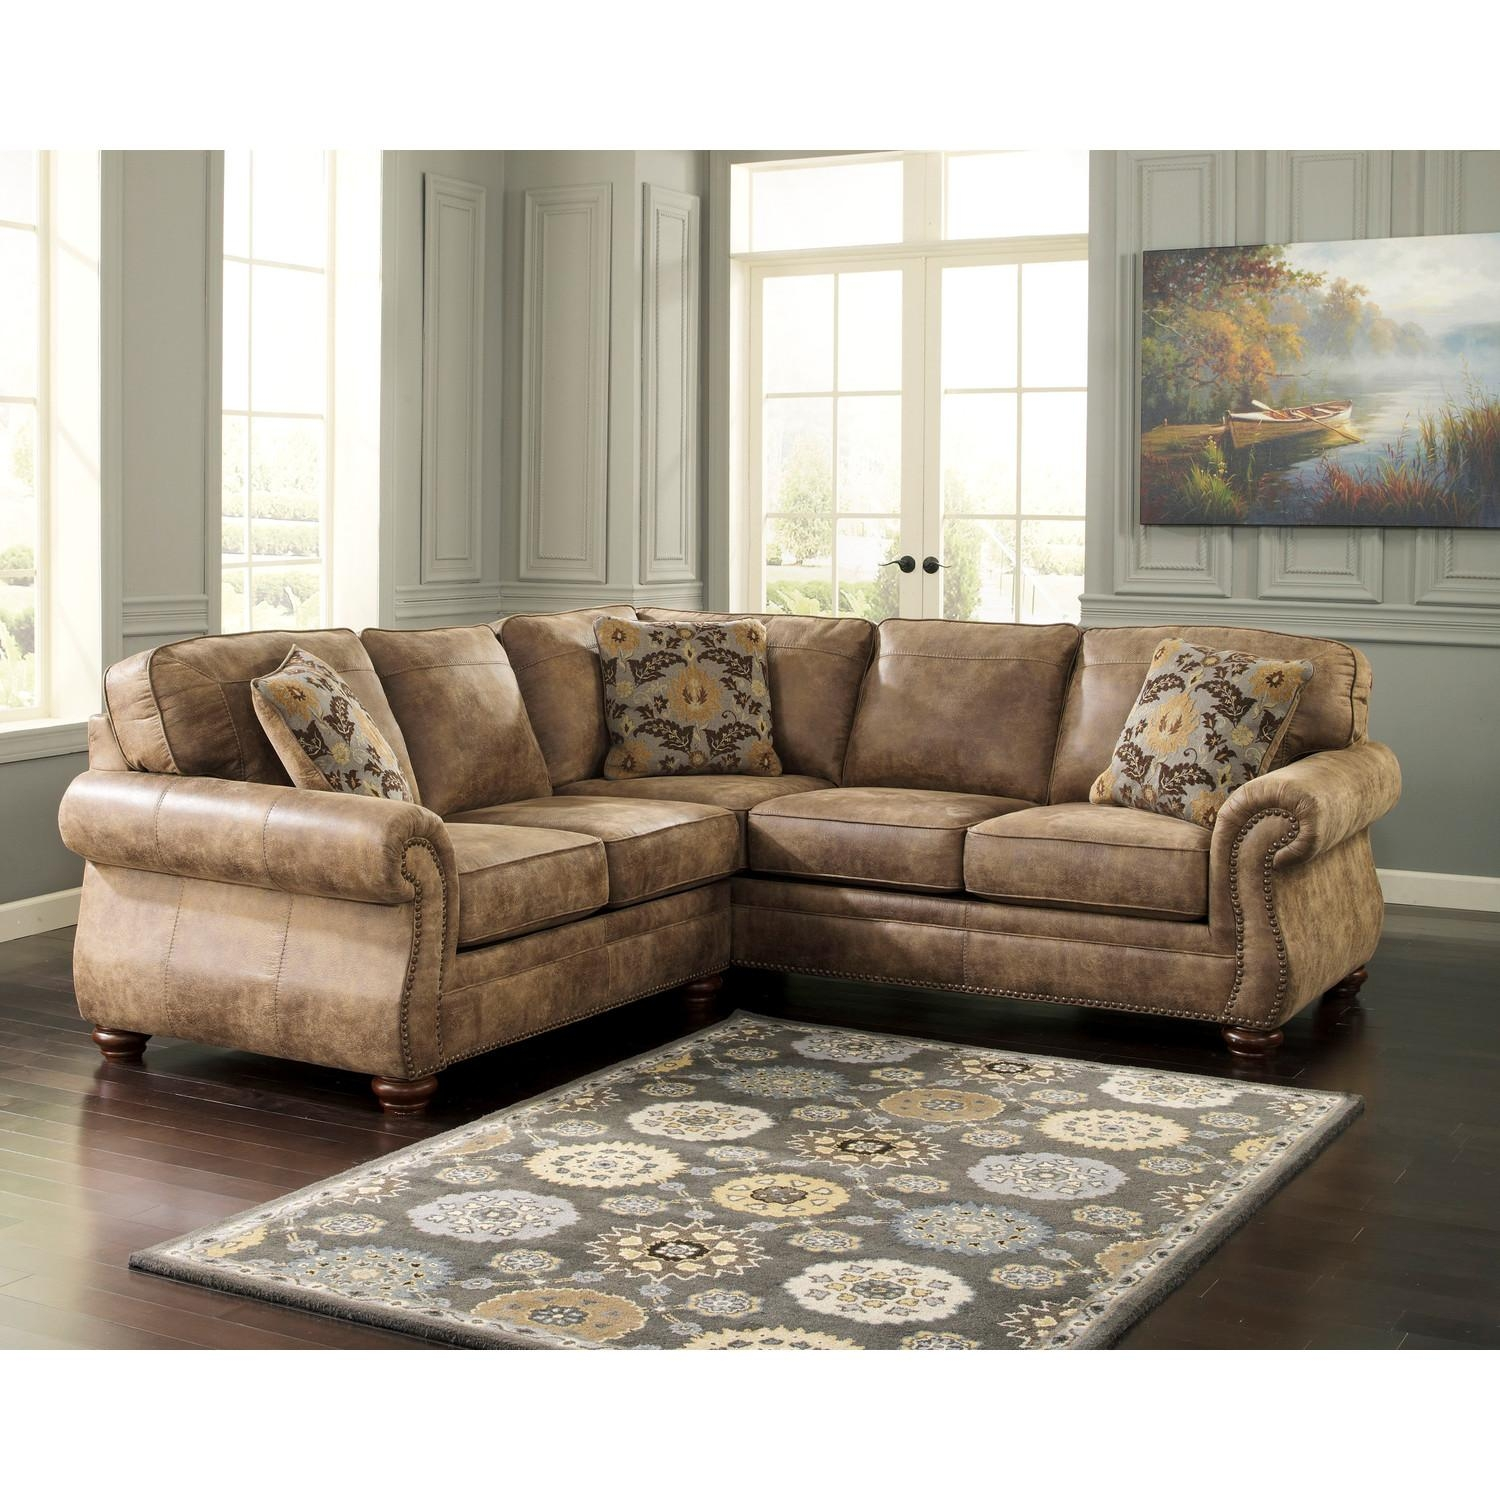 Small Space Sofas Top 10 Contemporary Sofas For Small Spaces With Regard To Tiny Sofas (Image 9 of 20)